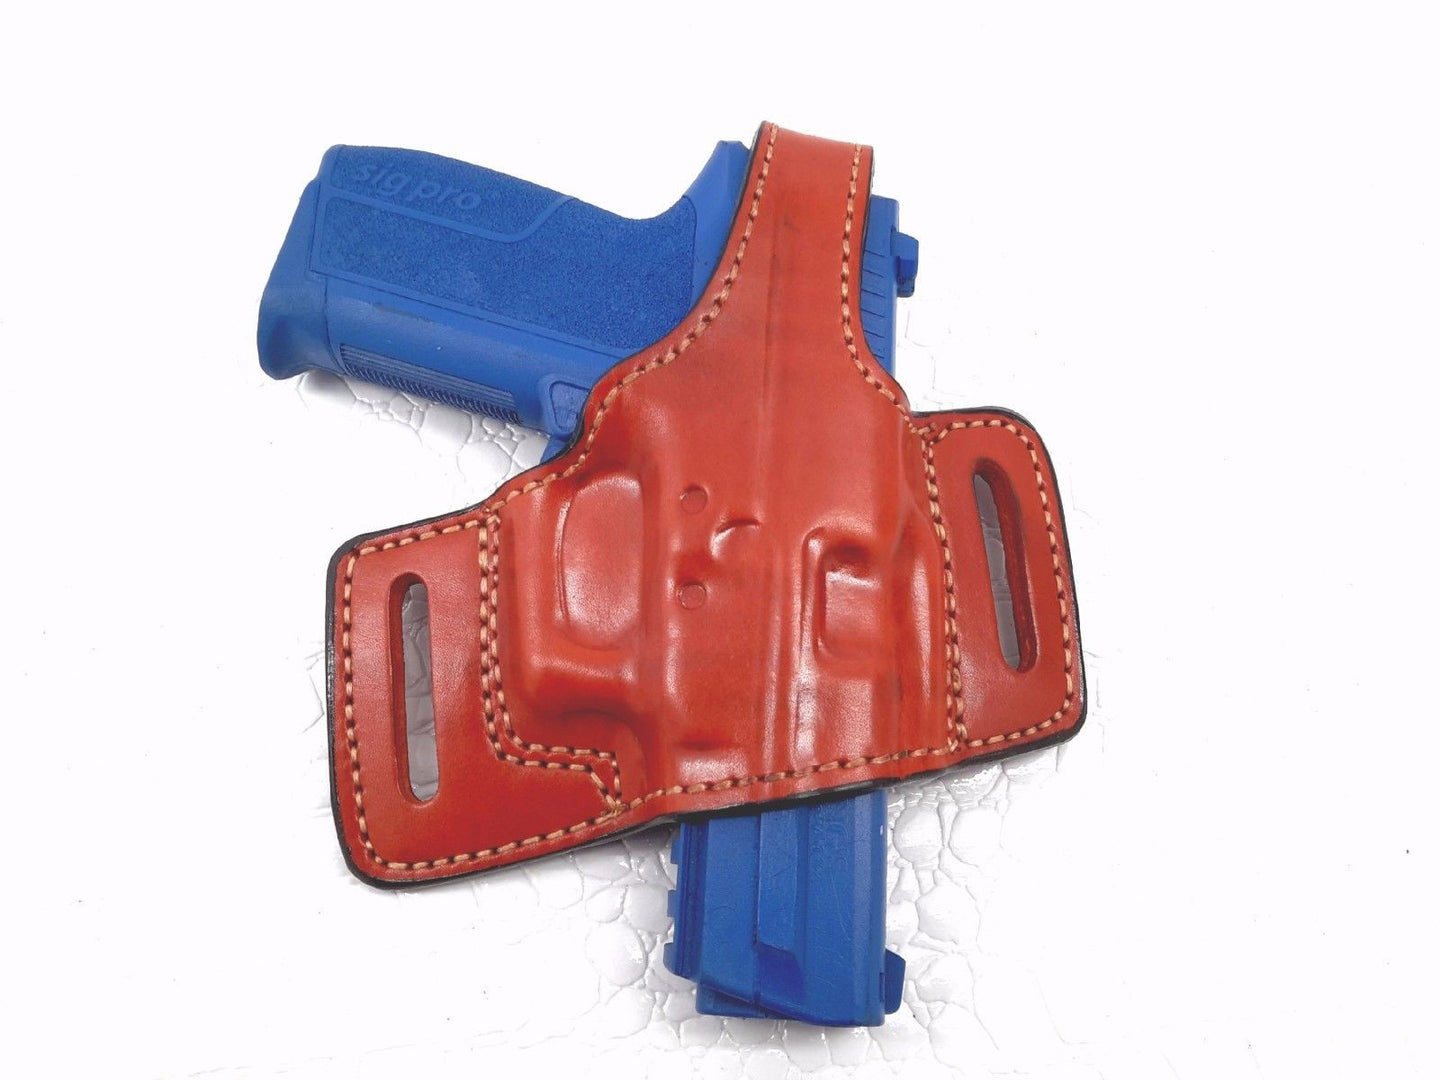 Thumb Break Belt Brown Holster for Sig Sauer SP2022, MyHolster